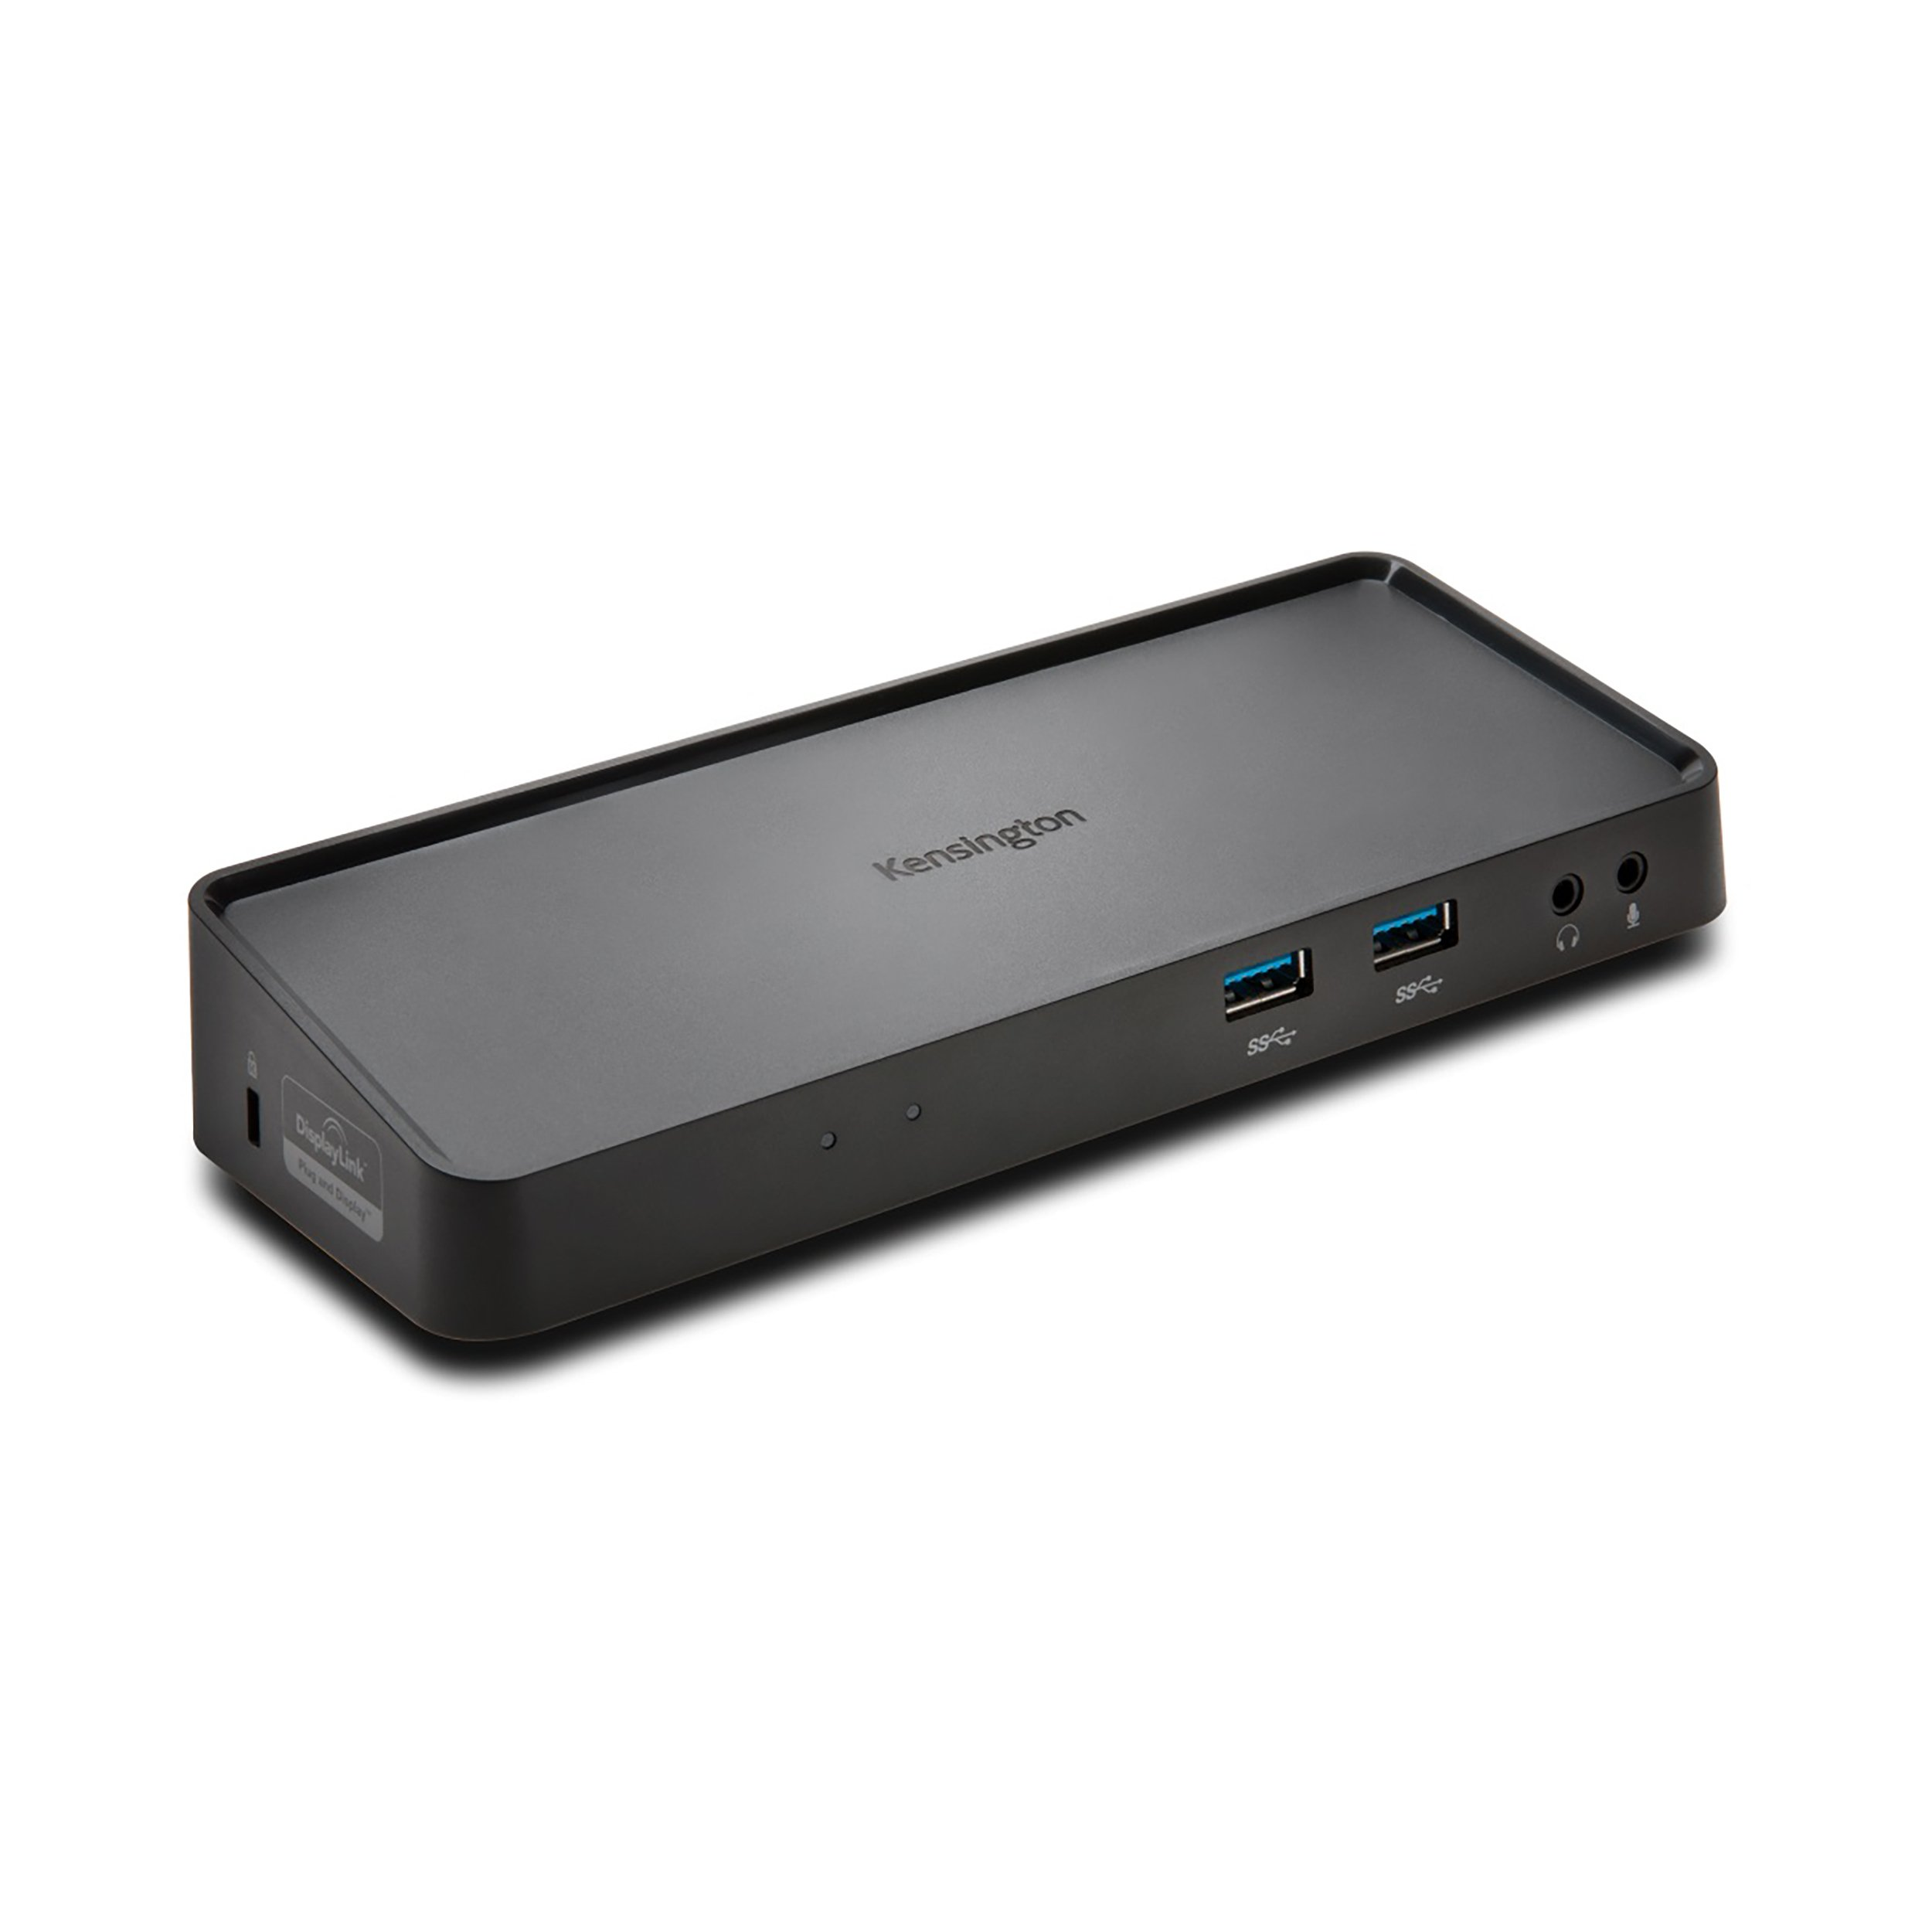 Kensington SD3600 Universal USB 3.0 Docking Station